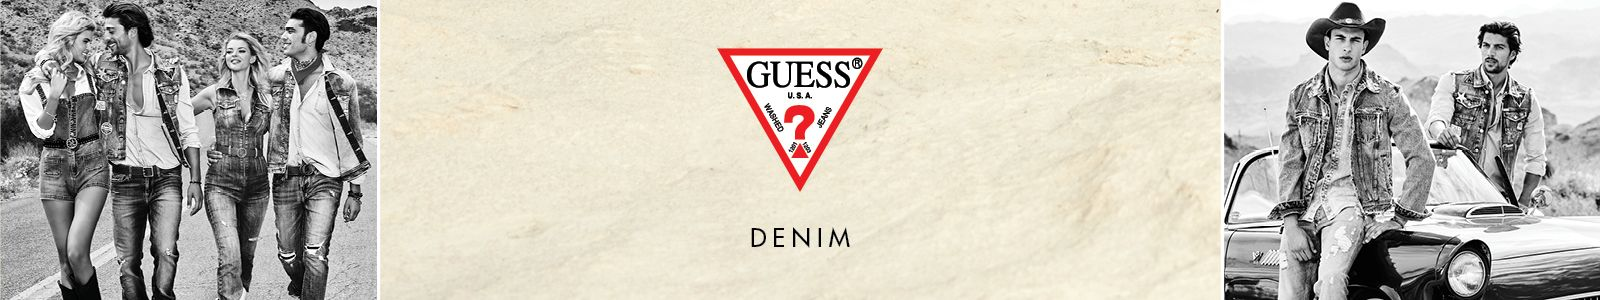 Guess, Denim